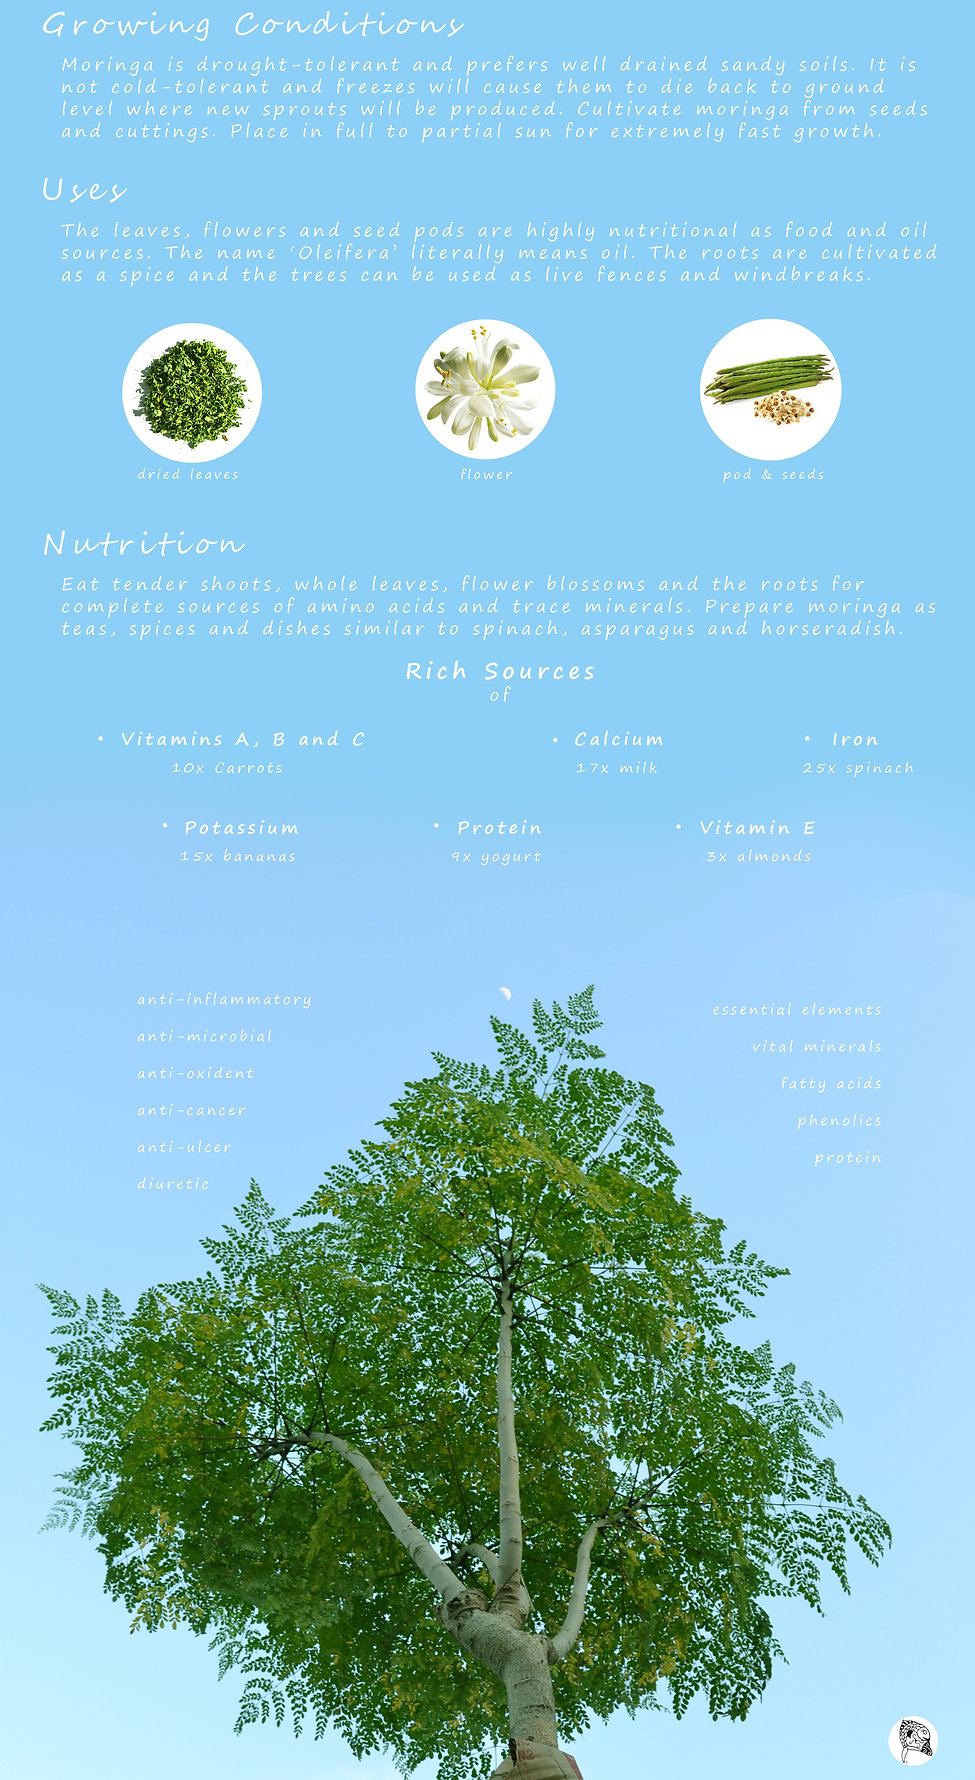 Moringa-INFO-bottom.jpg